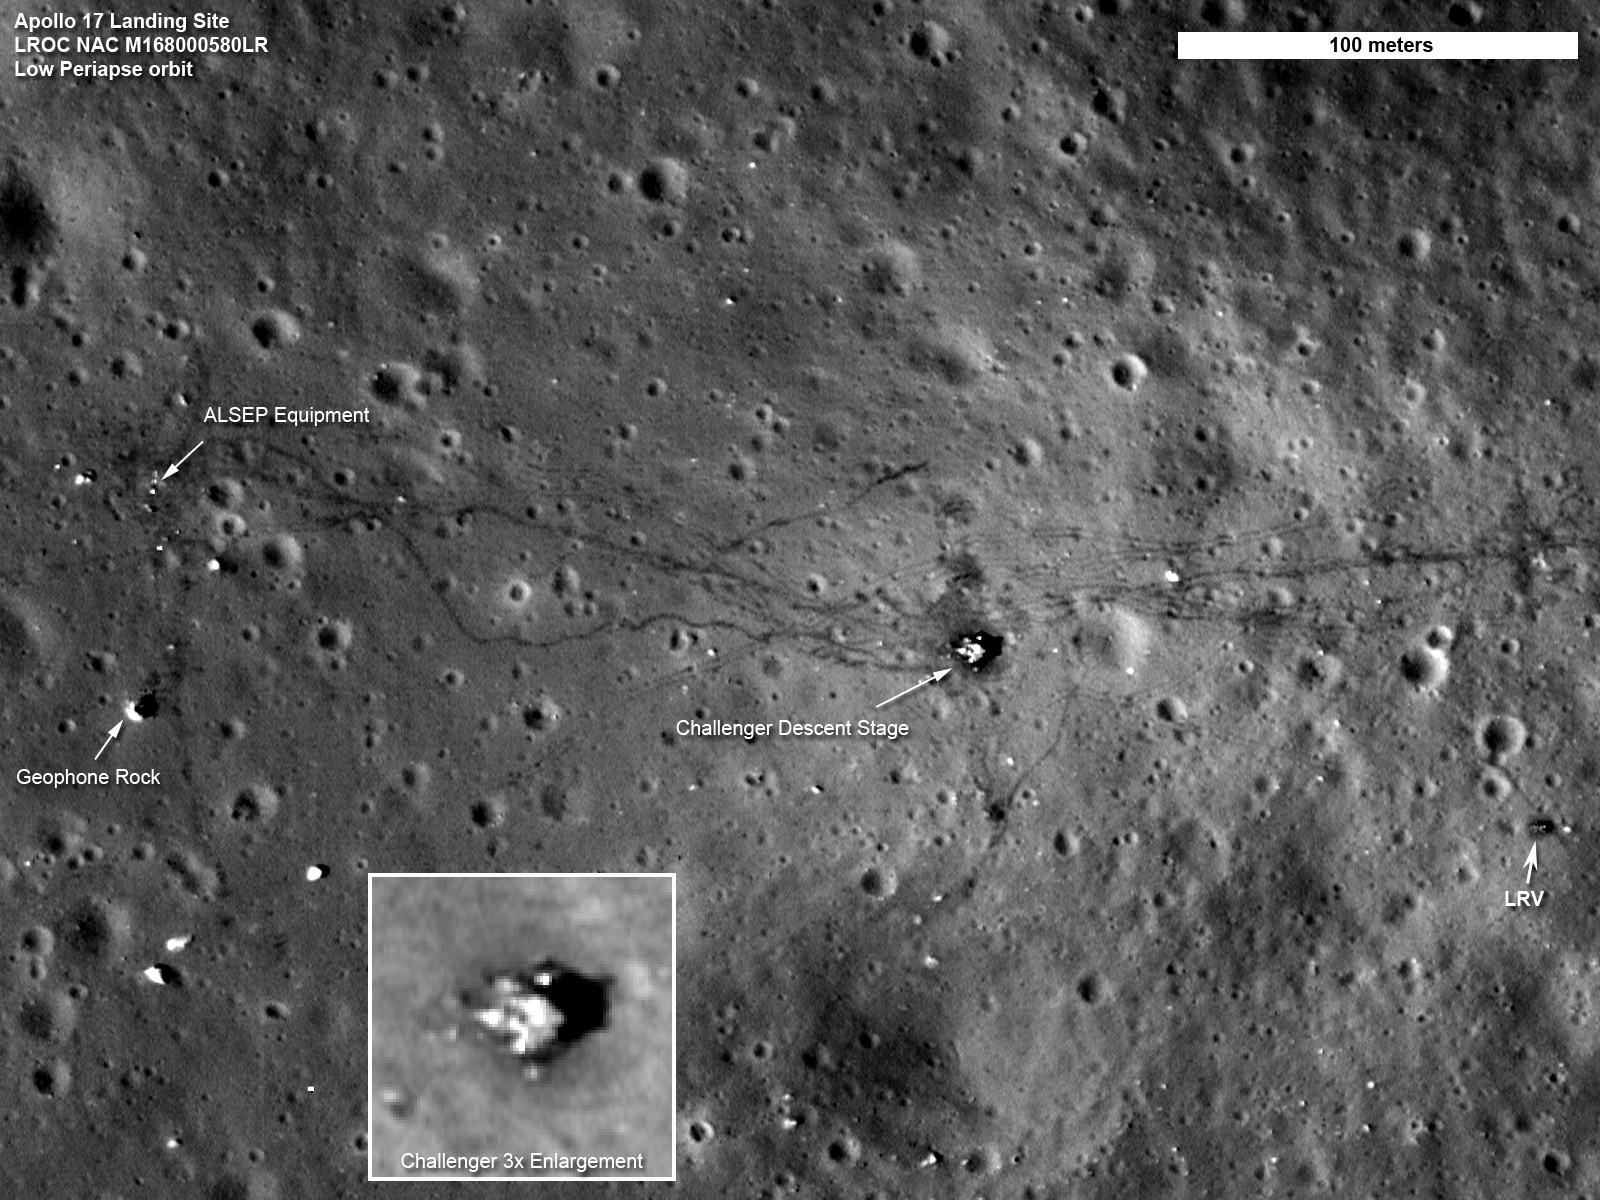 ../_images/apollo17-map2.jpg